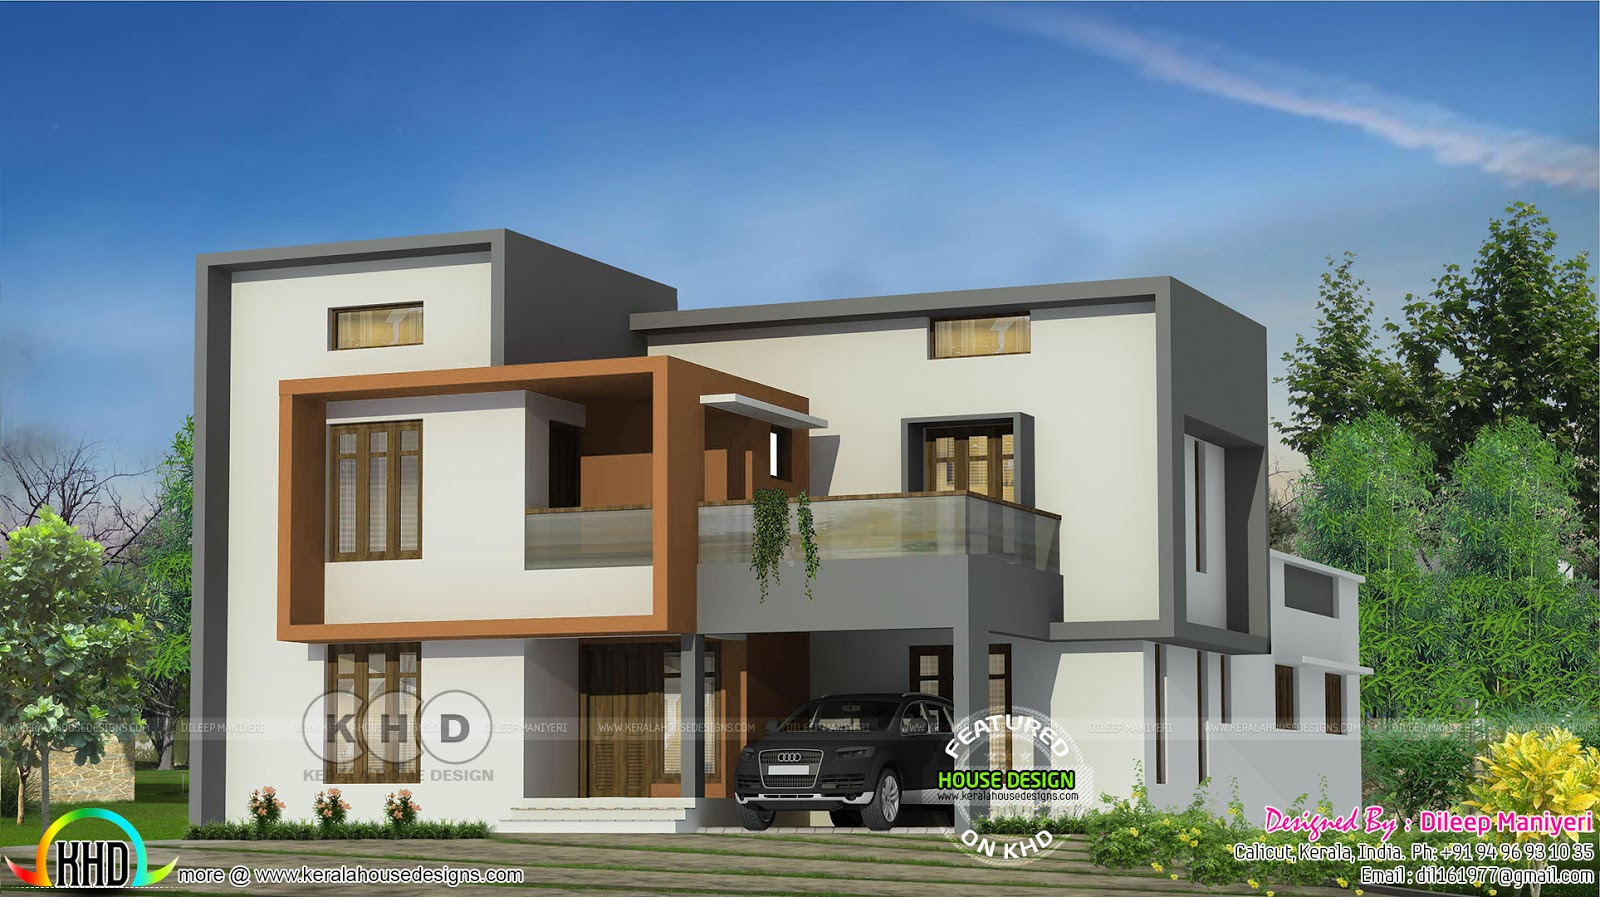 ground floor area 1556 sqft first floor area 1147 sqft total area 2703 sqft no of bedrooms 4 design style modern flat roof - First Floor Home Design Hd